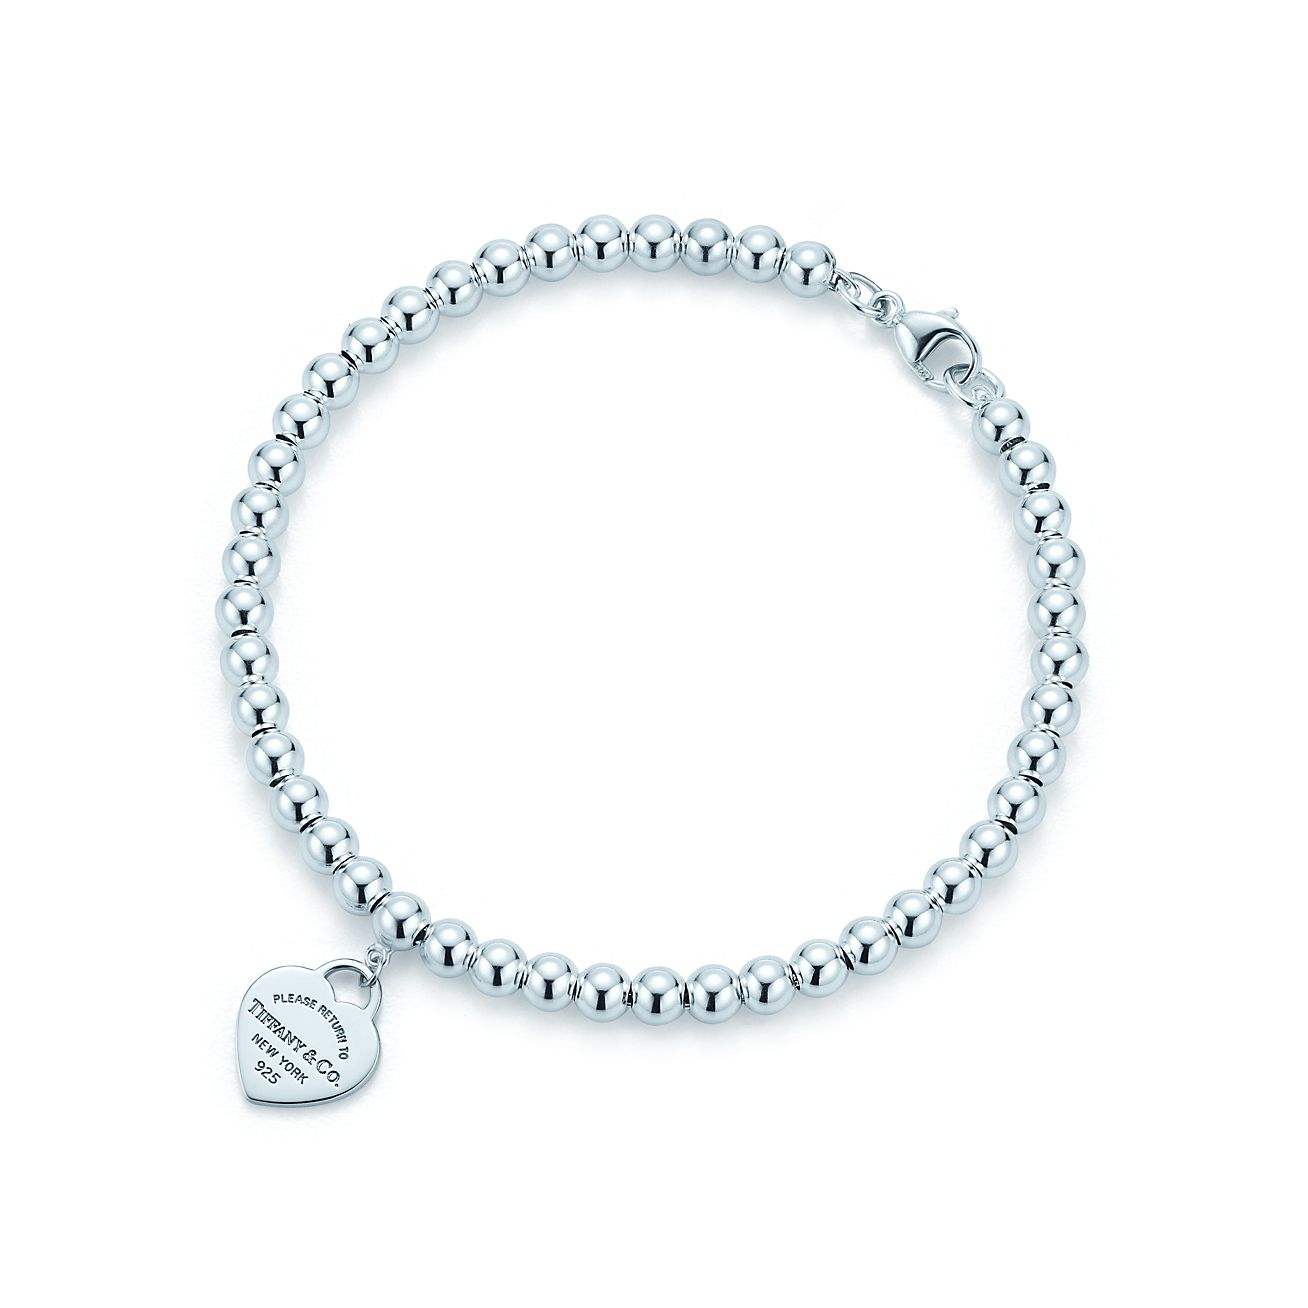 Return to Tiffany mini heart tag in sterling silver on a bead bracelet - Size 7 in Tiffany & Co.